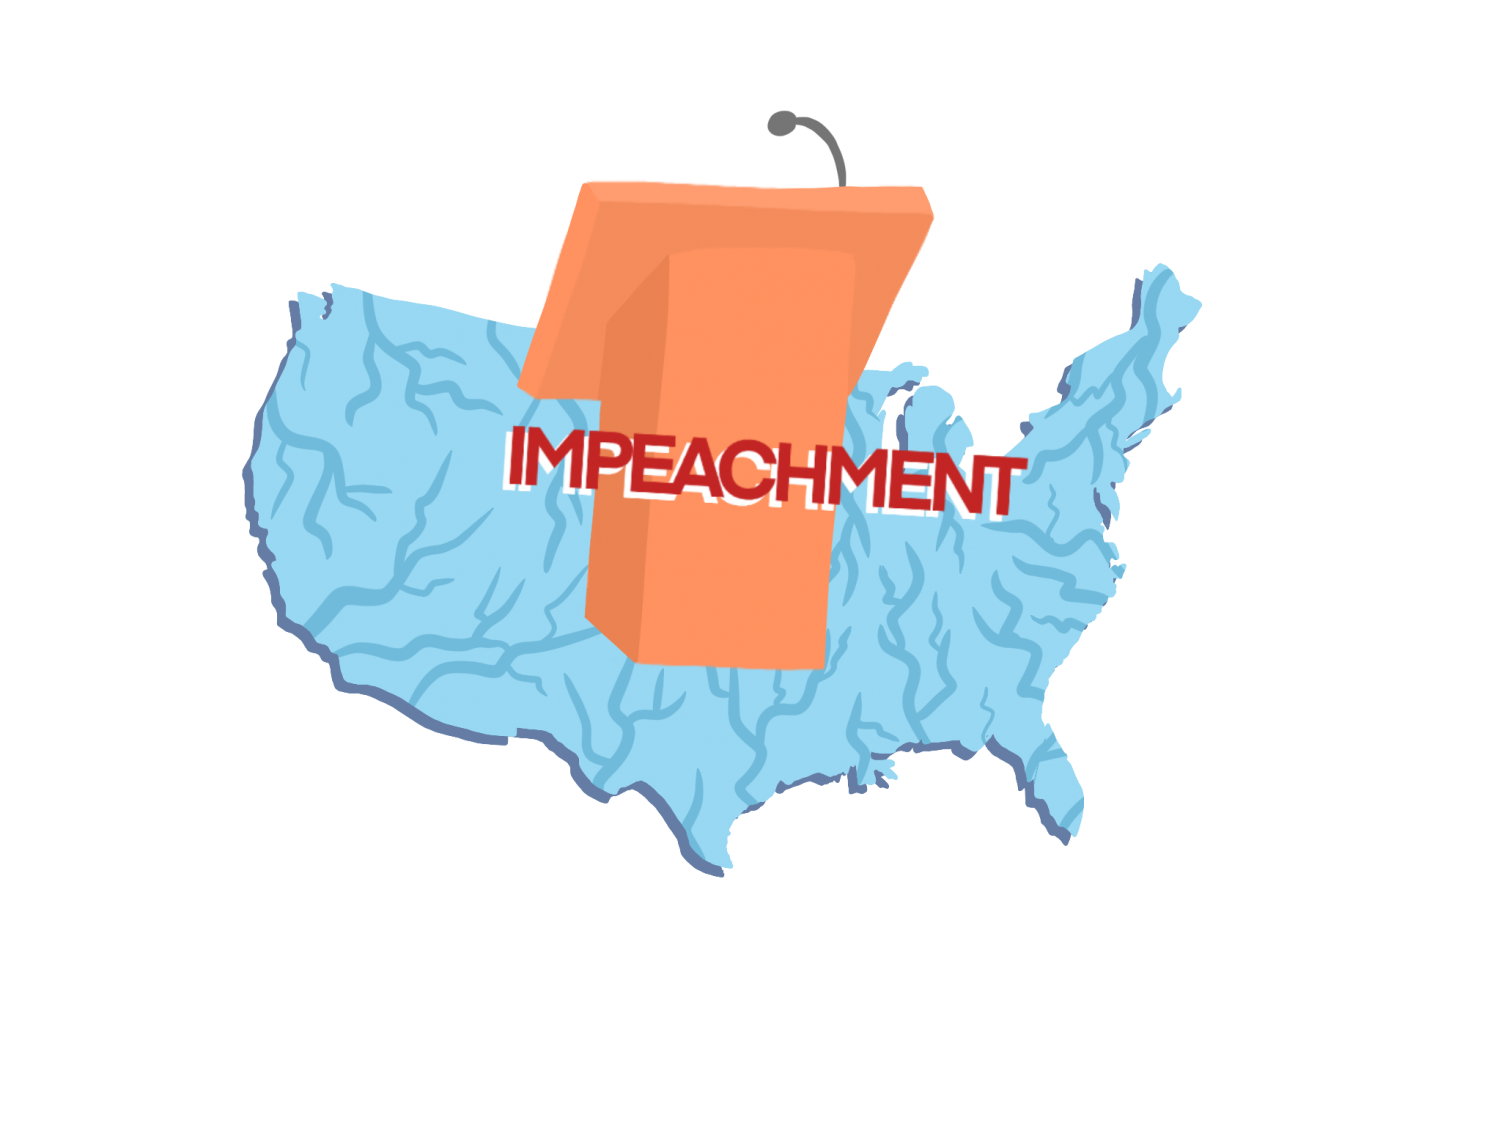 The current impeachment inquiries have a drastic effect on the country.